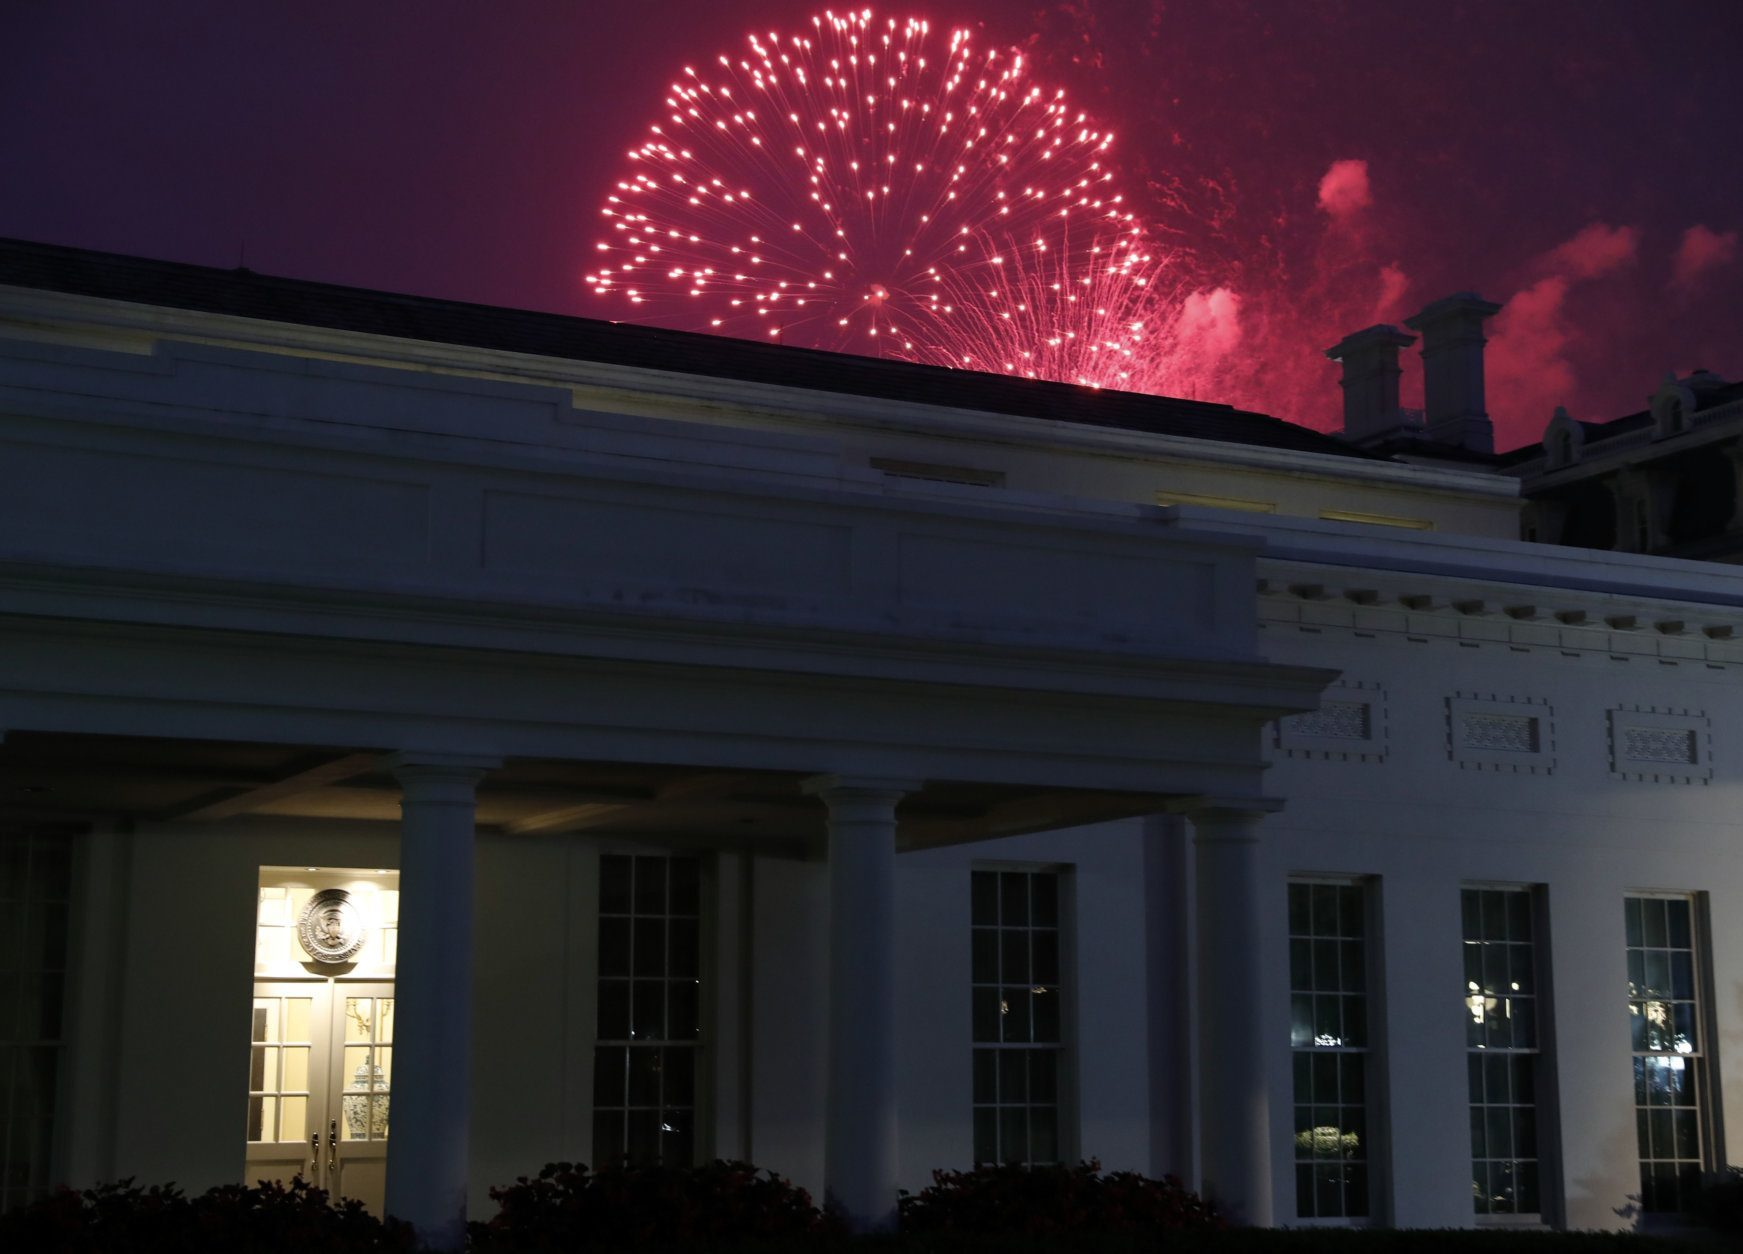 Fireworks explode over the West Wing of the White House for the Fourth of July holiday, Tuesday, July 4, 2017, in Washington. (AP Photo/Alex Brandon)